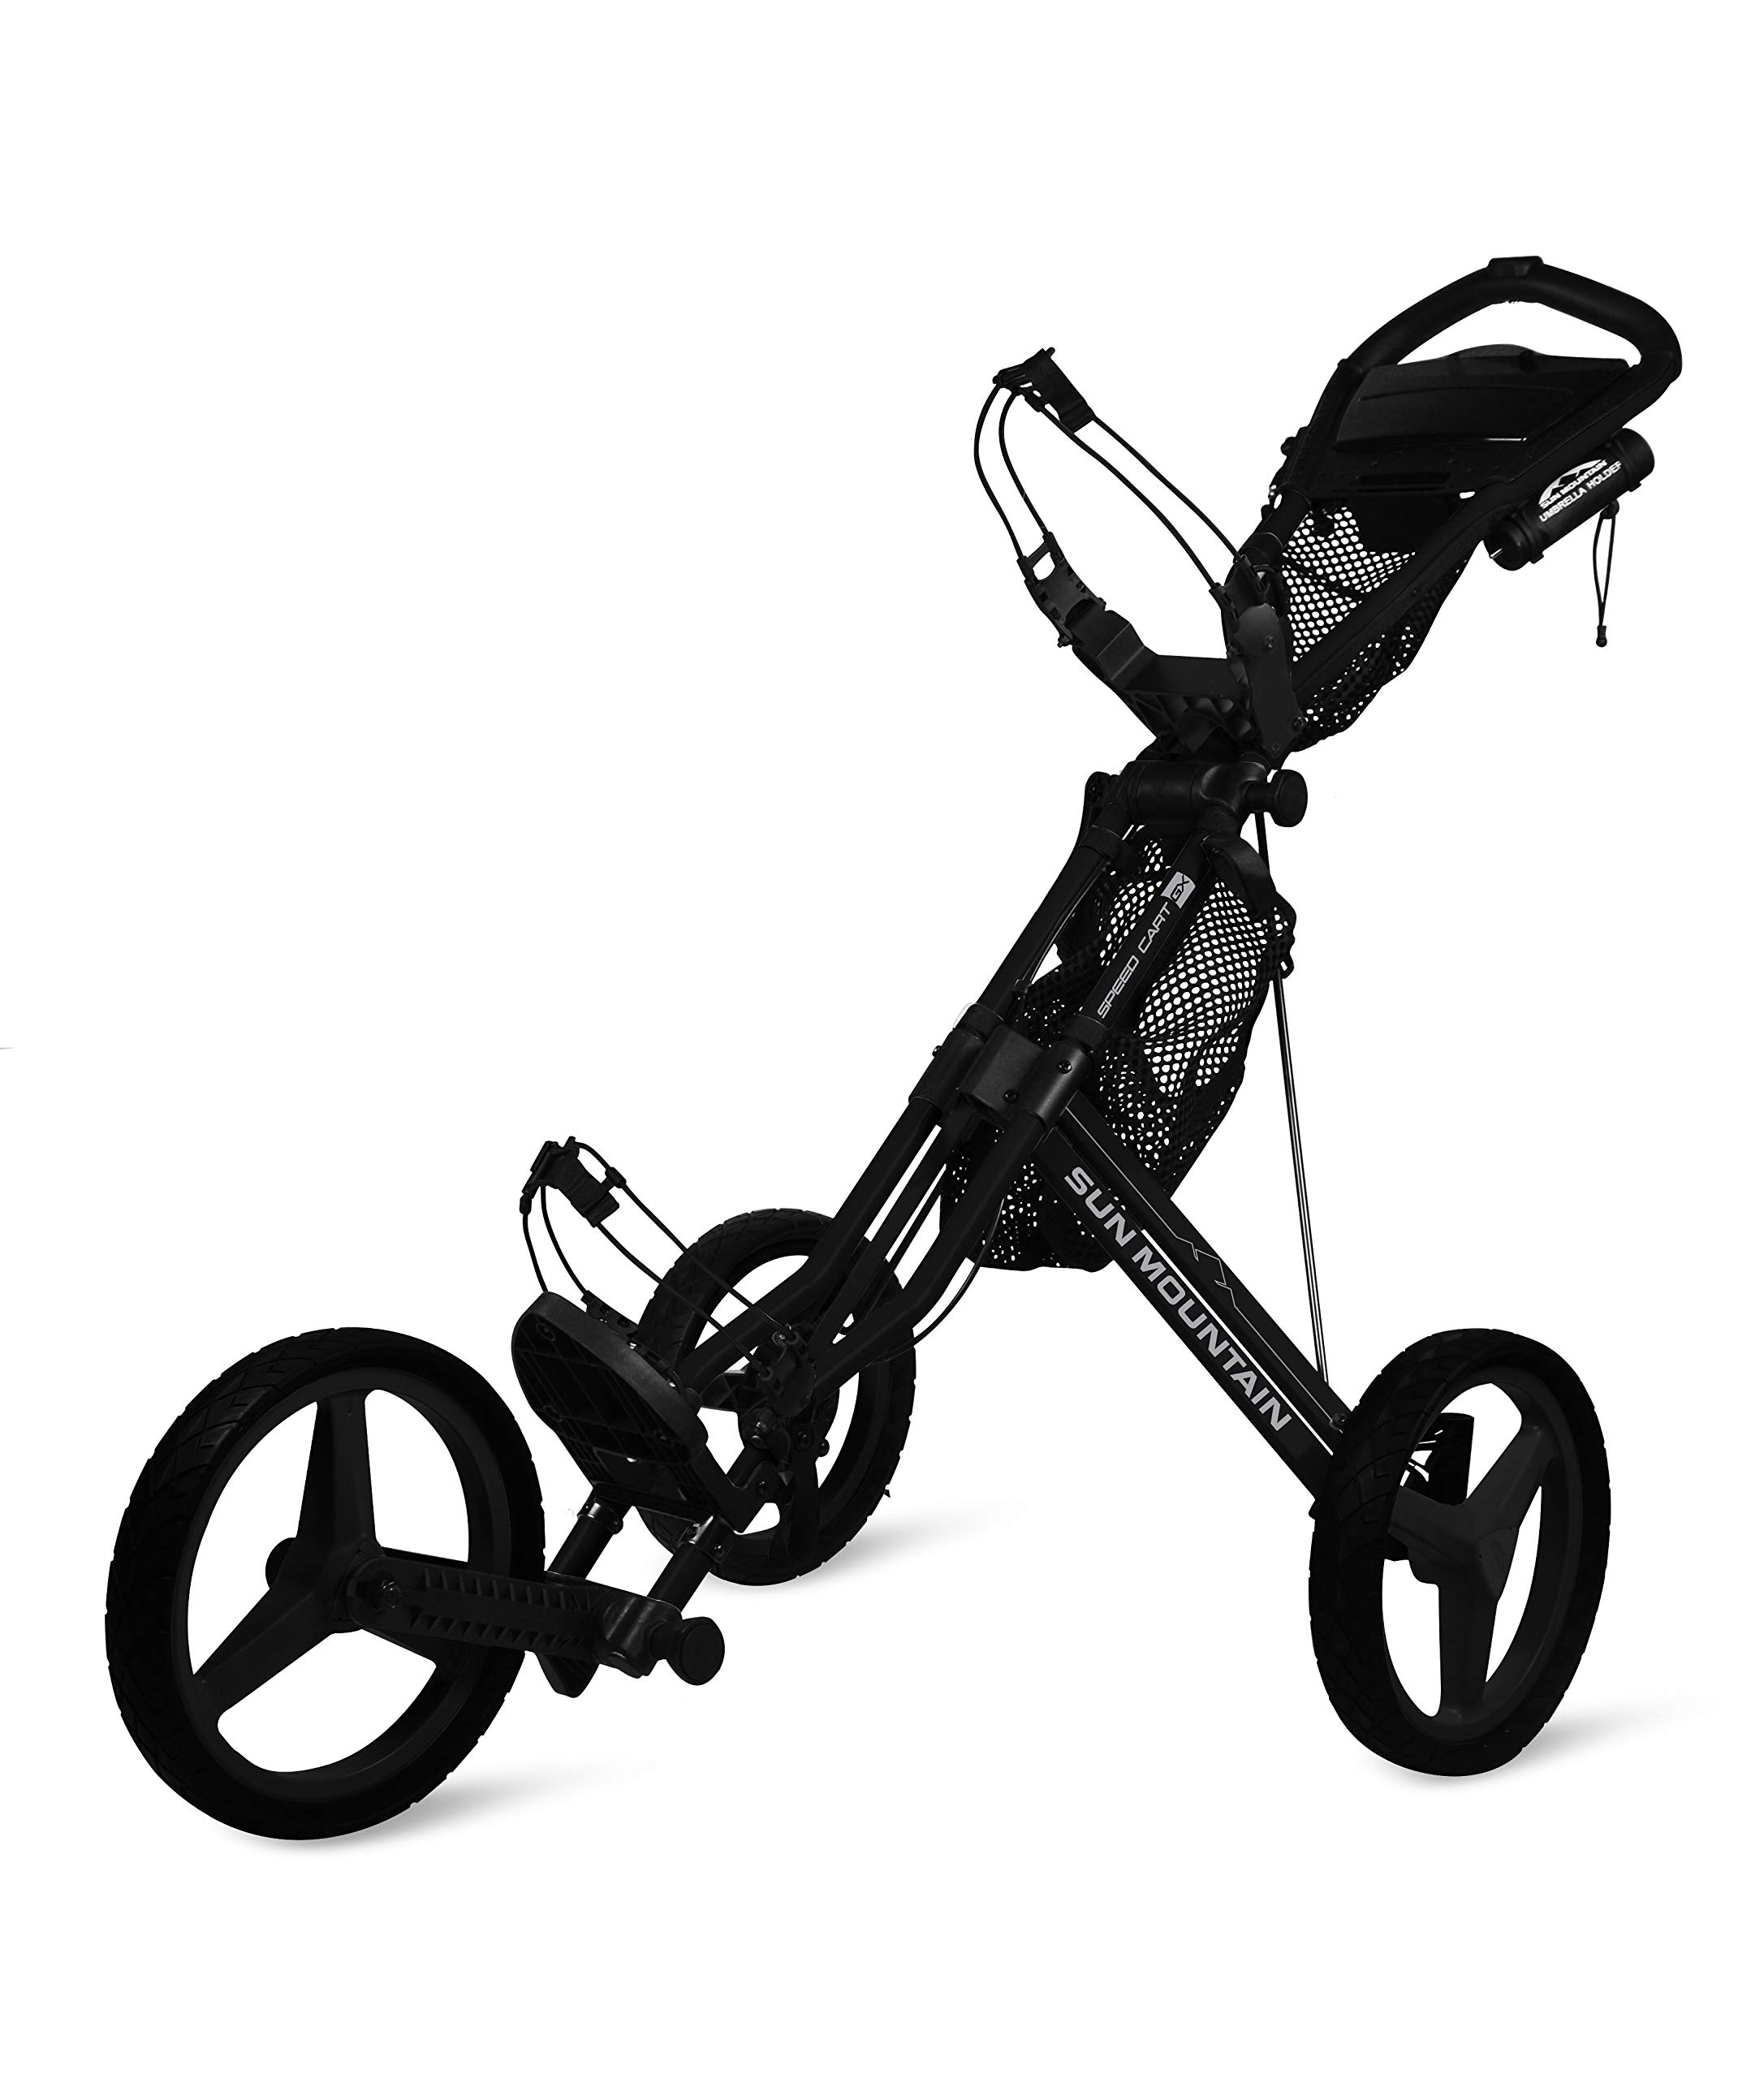 Sun Mountain Speed Cart Gx Push Cart Black/Black